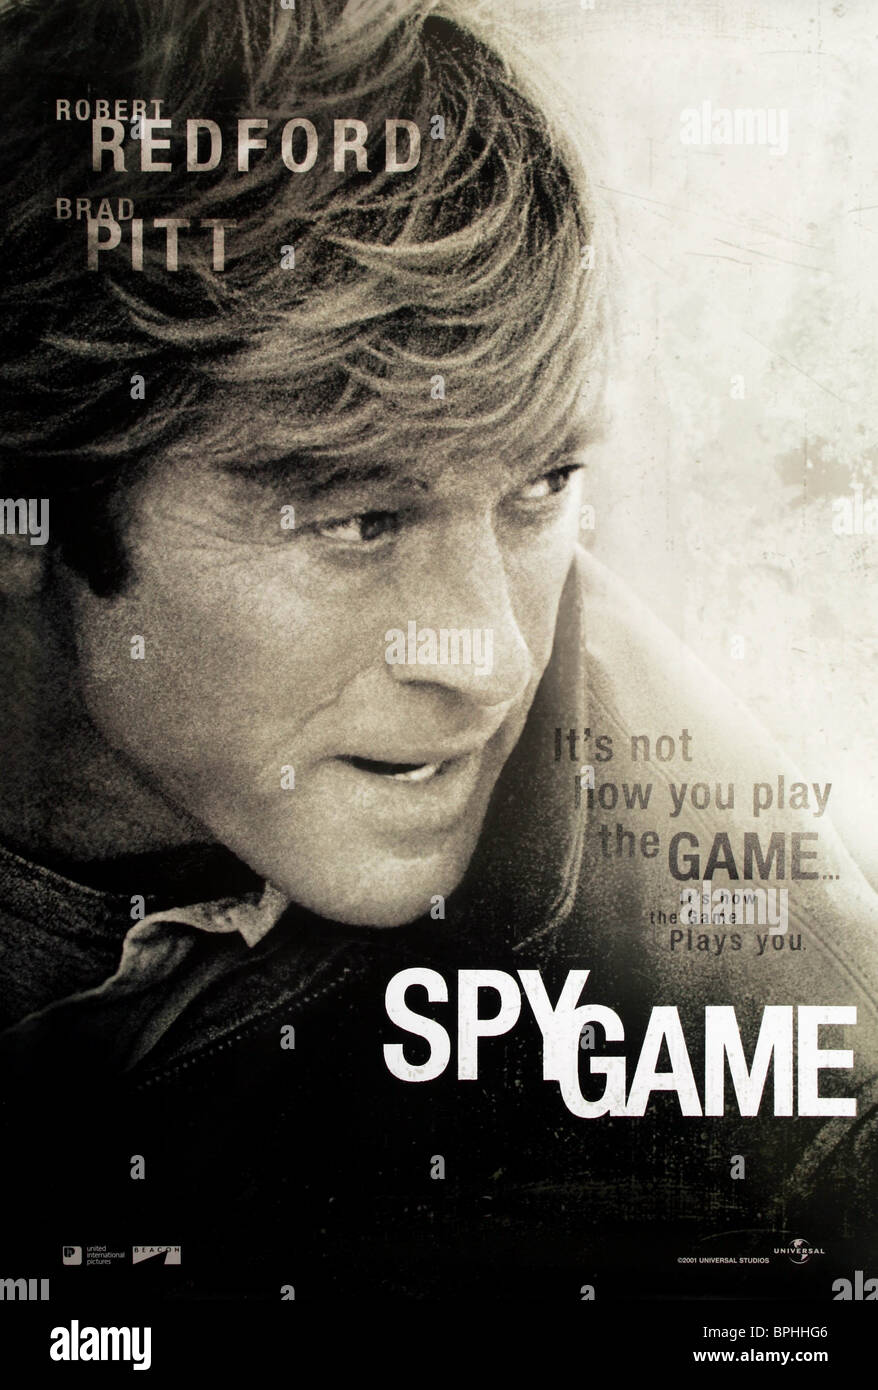 ROBERT REDFORD FILM POSTER SPY GAME (2001) - Stock Image